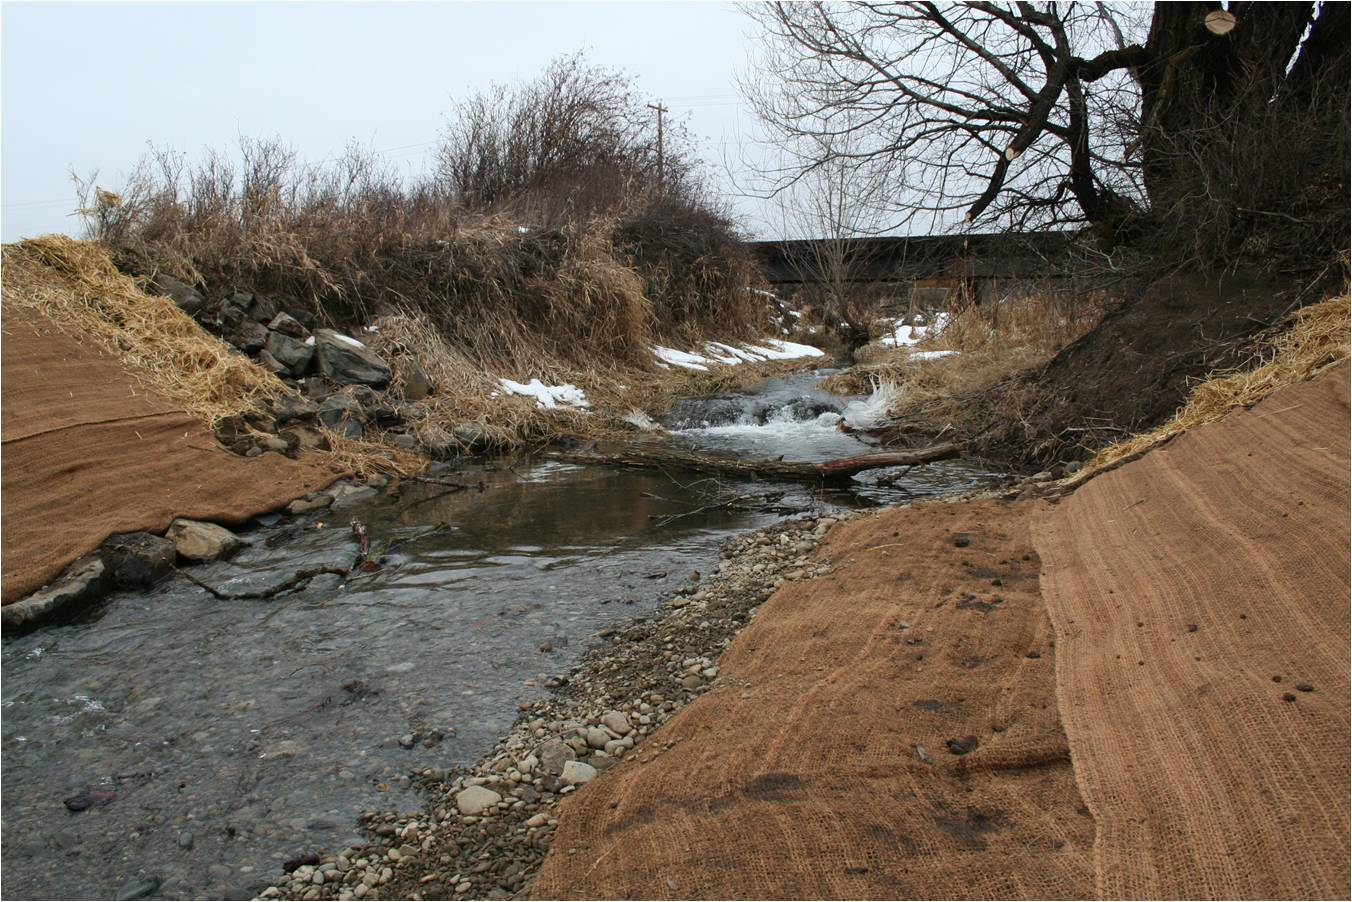 Currier/Reecer Creek Barrier Removal and Revegetation Project